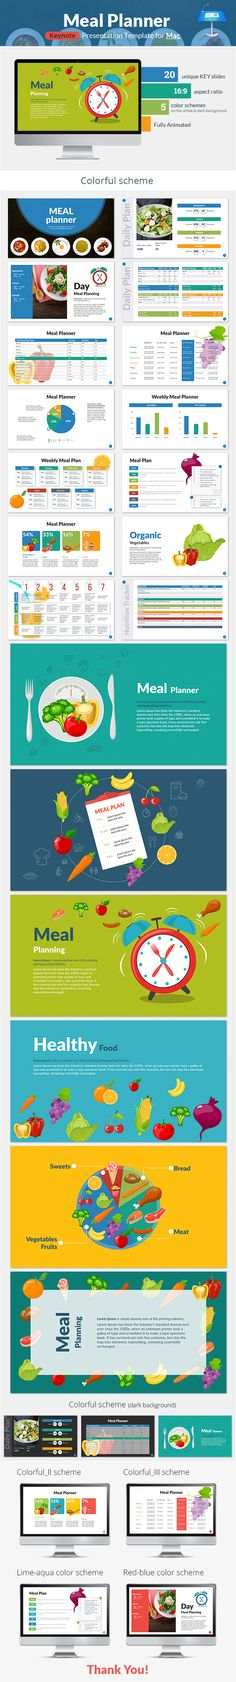 Buy Meal Planner Keynote Presentation Template by SanaNik on GraphicRiver. PowerPoint Version is Available Meal Planner Keynote Presentation Template Need to create a meal plan? Presentation Slides, Presentation Templates, Graphisches Design, Meal Planner, Keynote Template, Light In The Dark, Color Schemes, Nutrition, Meals